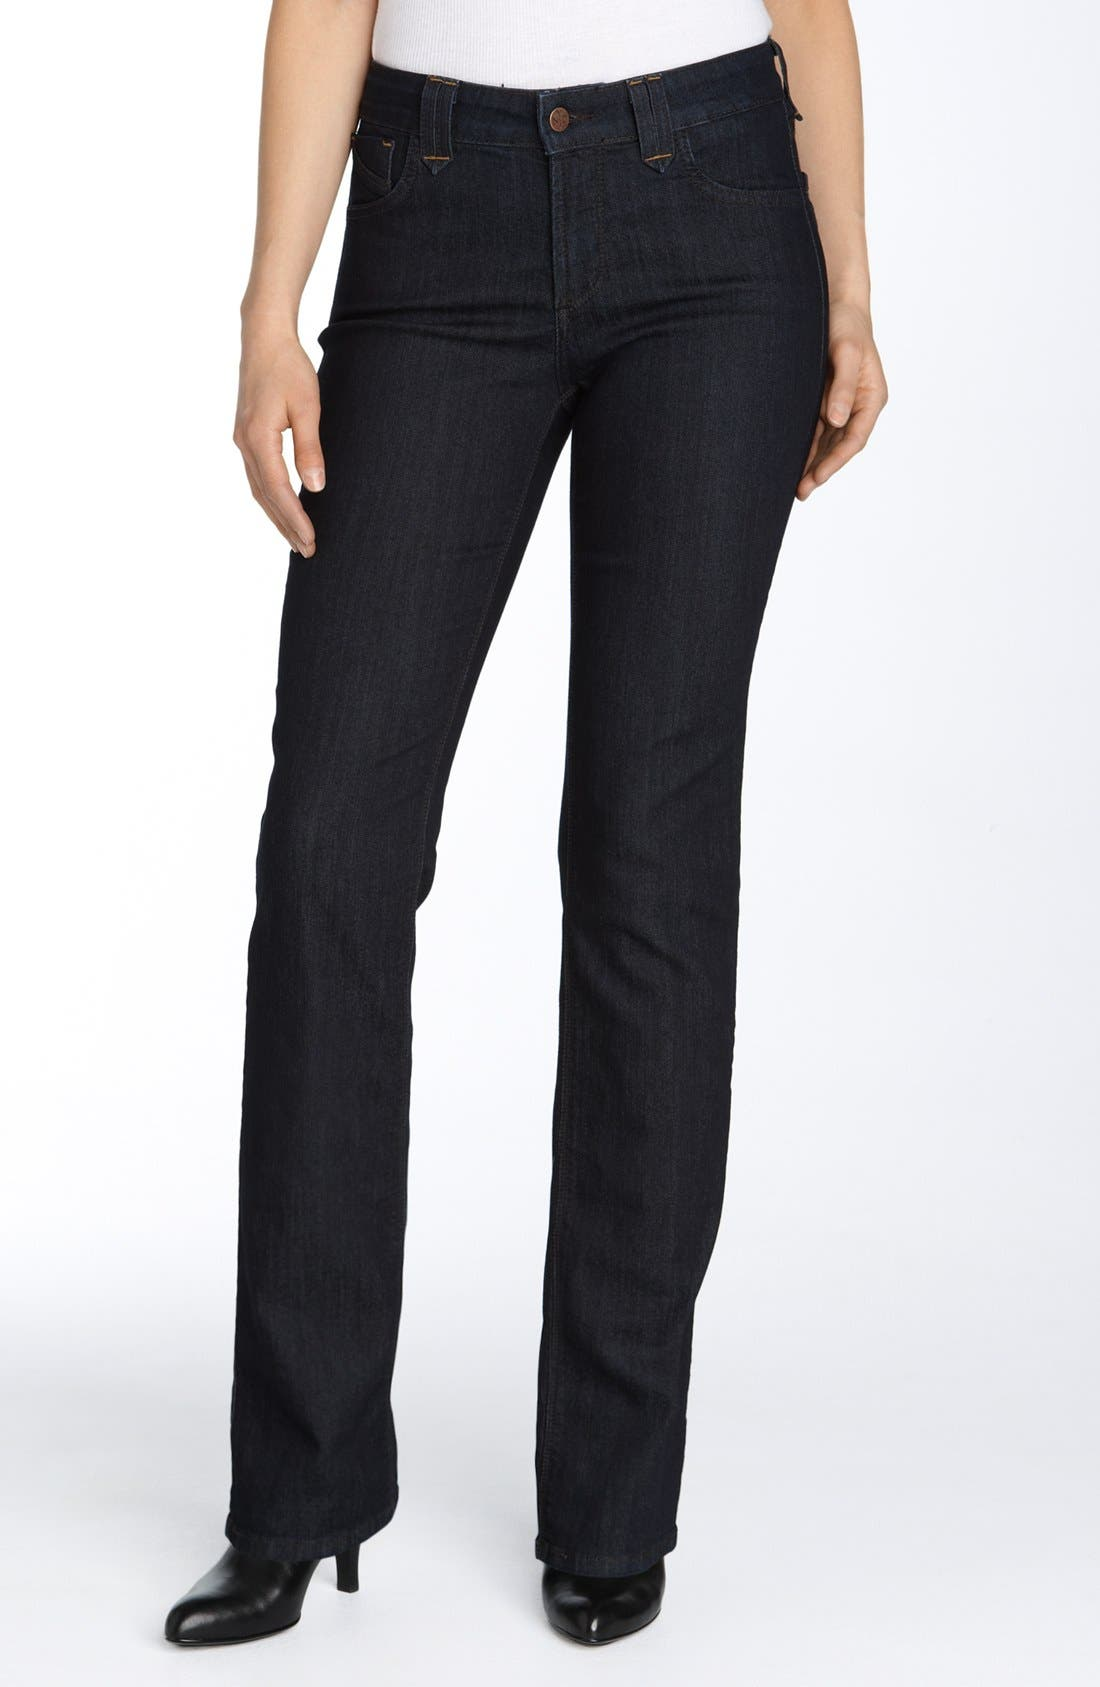 Main Image - NYDJ 'Marilyn' Stretch Straight Leg Jeans (Petite)